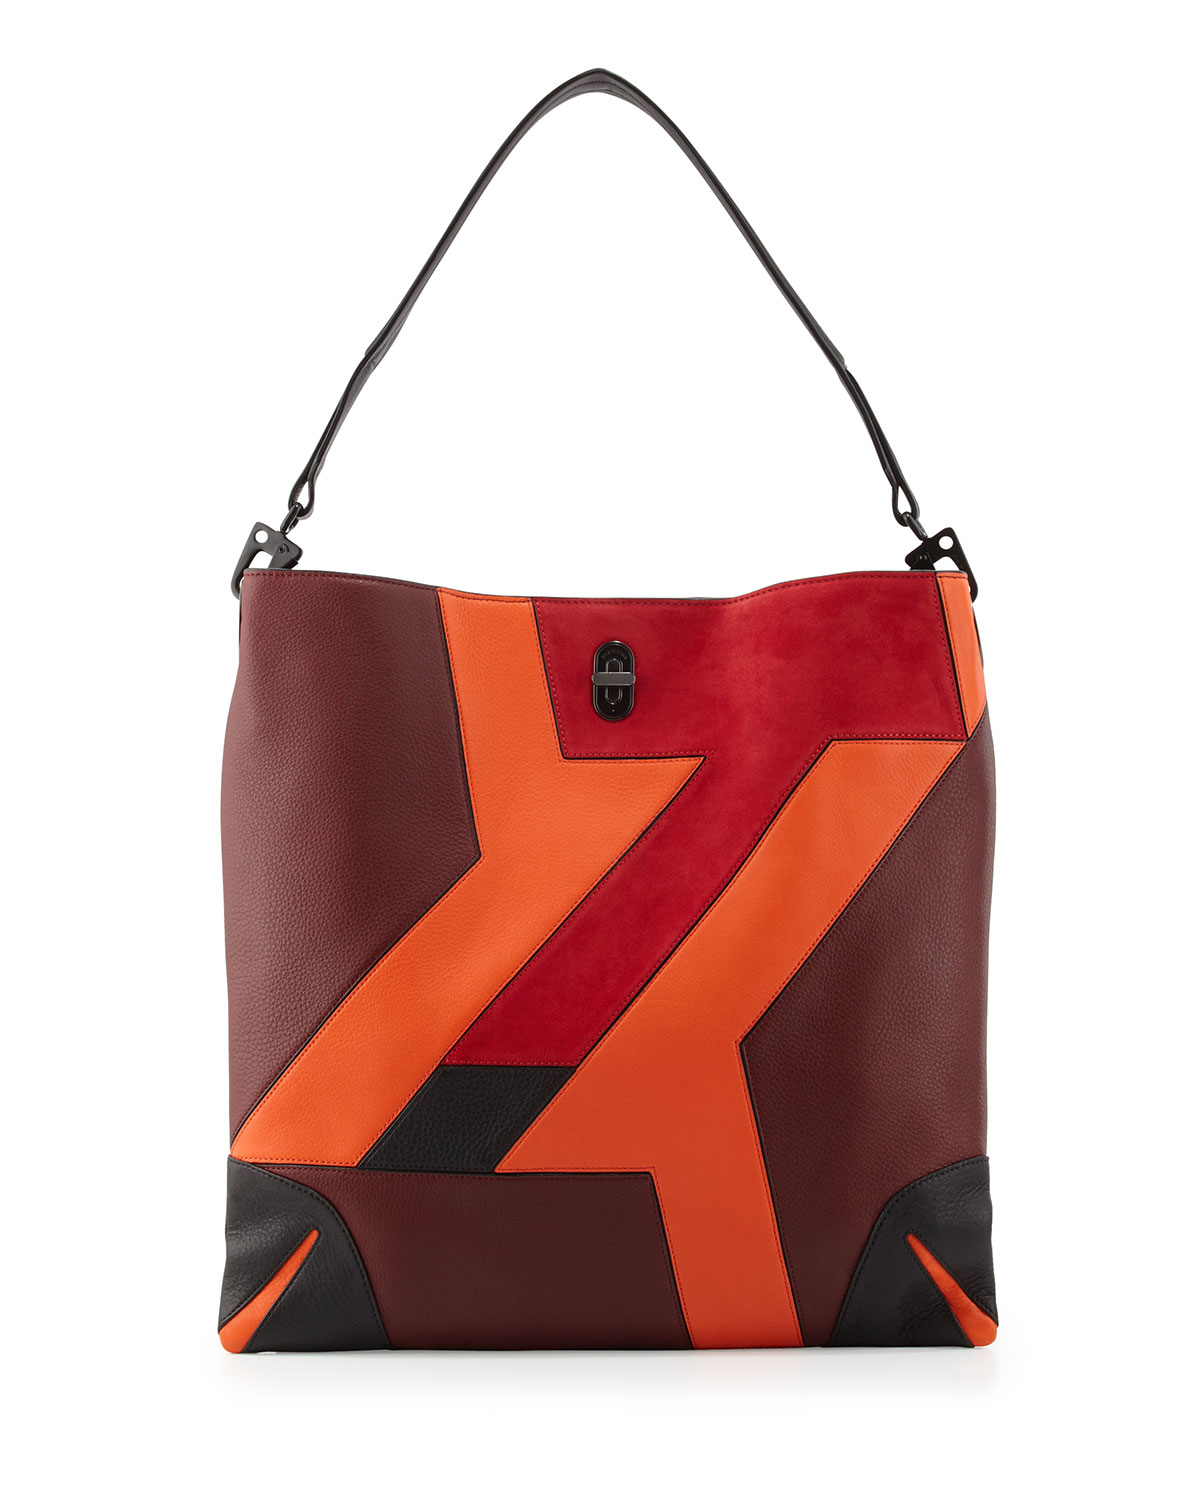 Rag   Bone Sullivan Patchwork Leather Hobo Bag